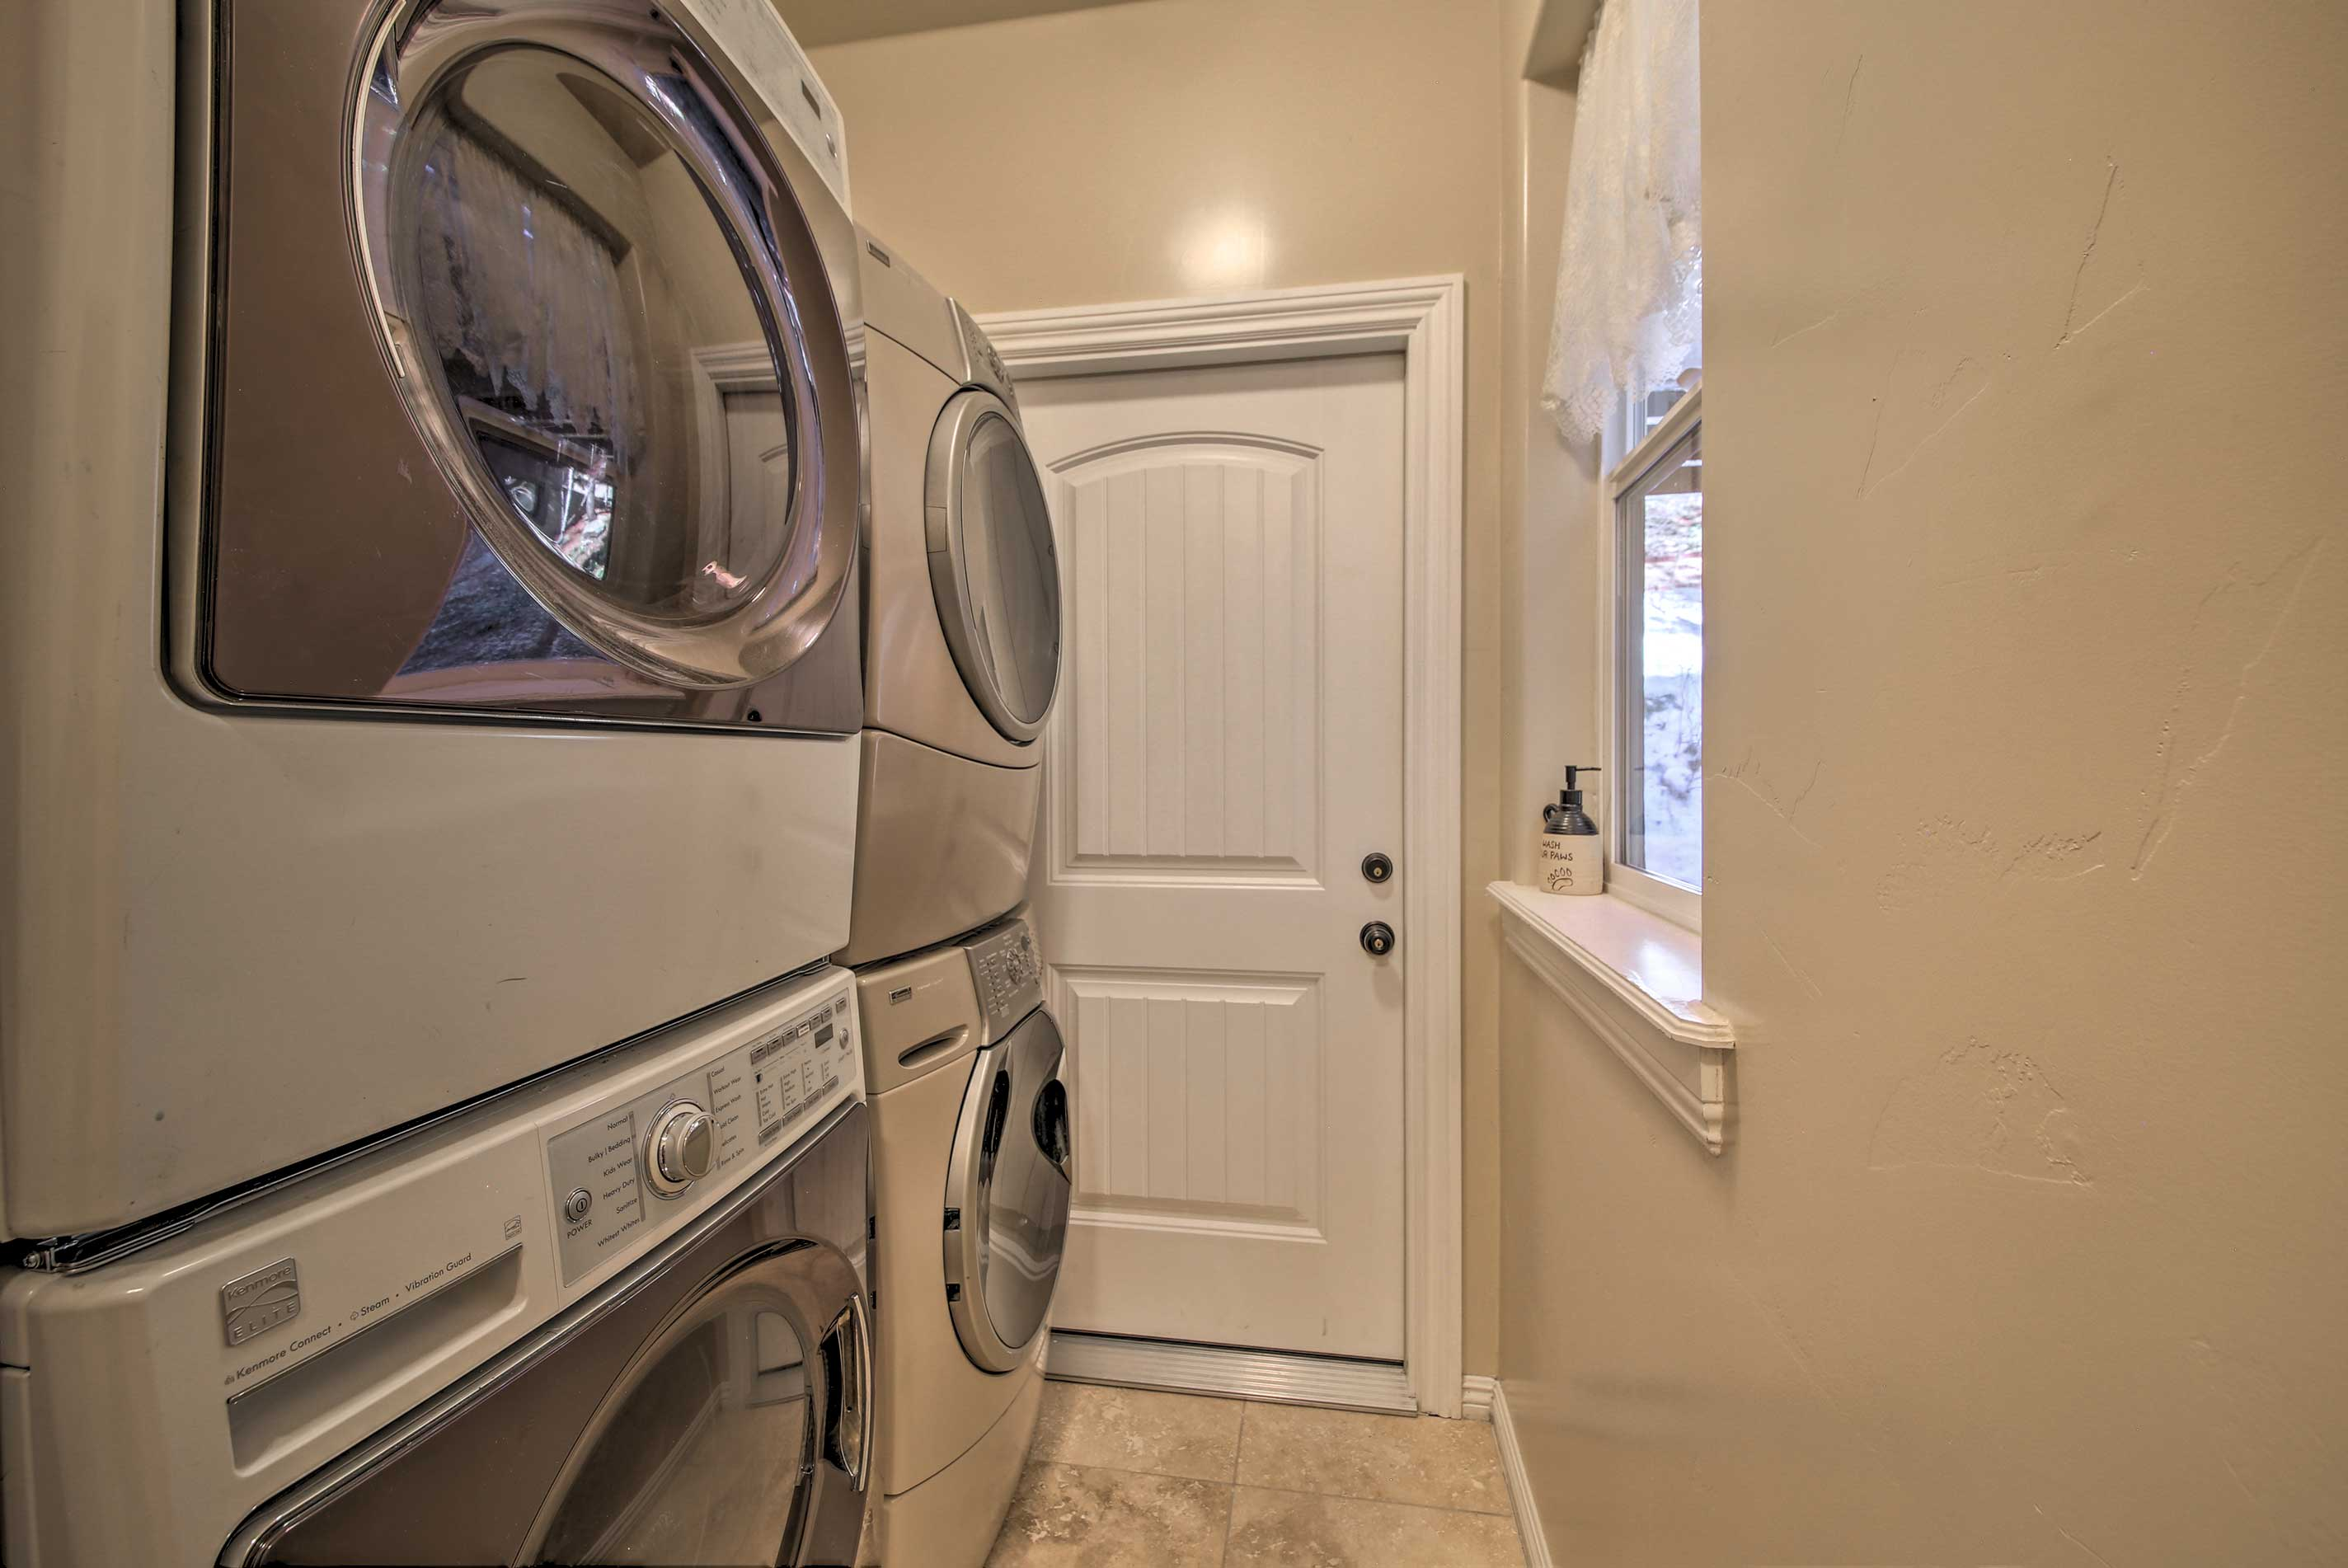 The whole family can keep their wardrobe clean with multiple laundry machines!